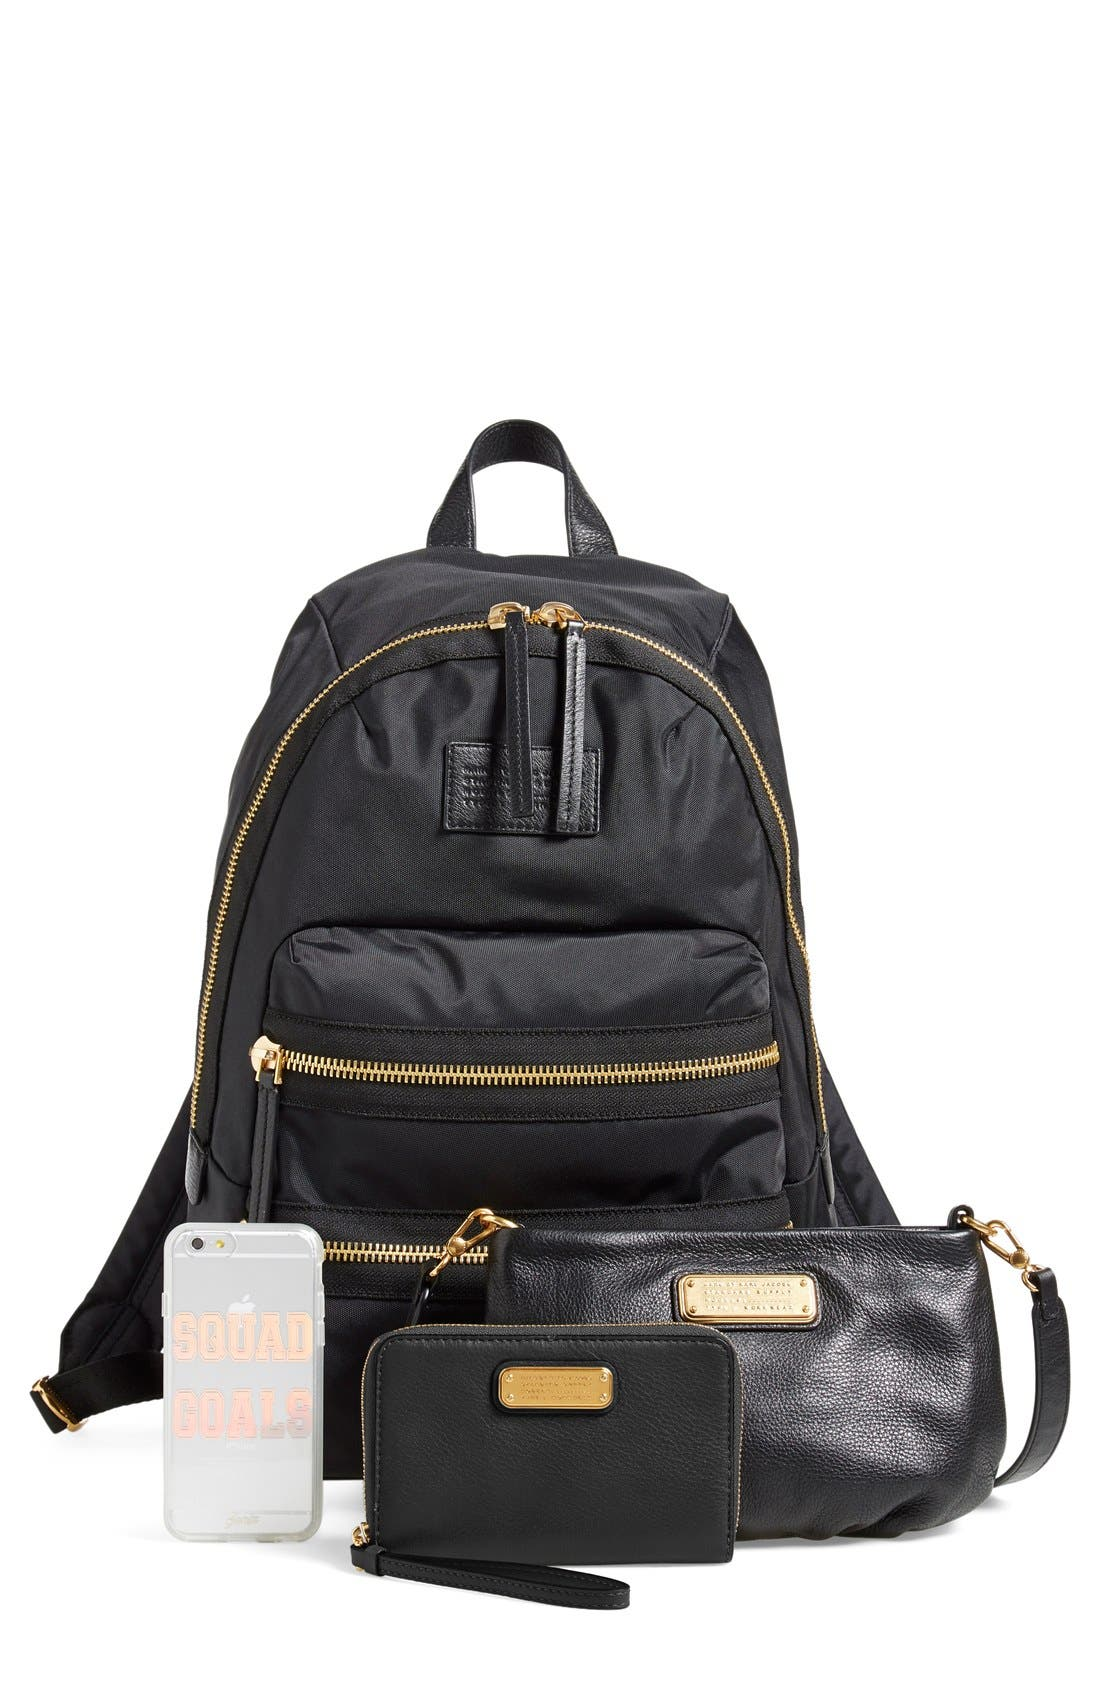 MARC BY MARC JACOBS 'Domo Arigato Packrat' Backpack,                             Alternate thumbnail 3, color,                             001